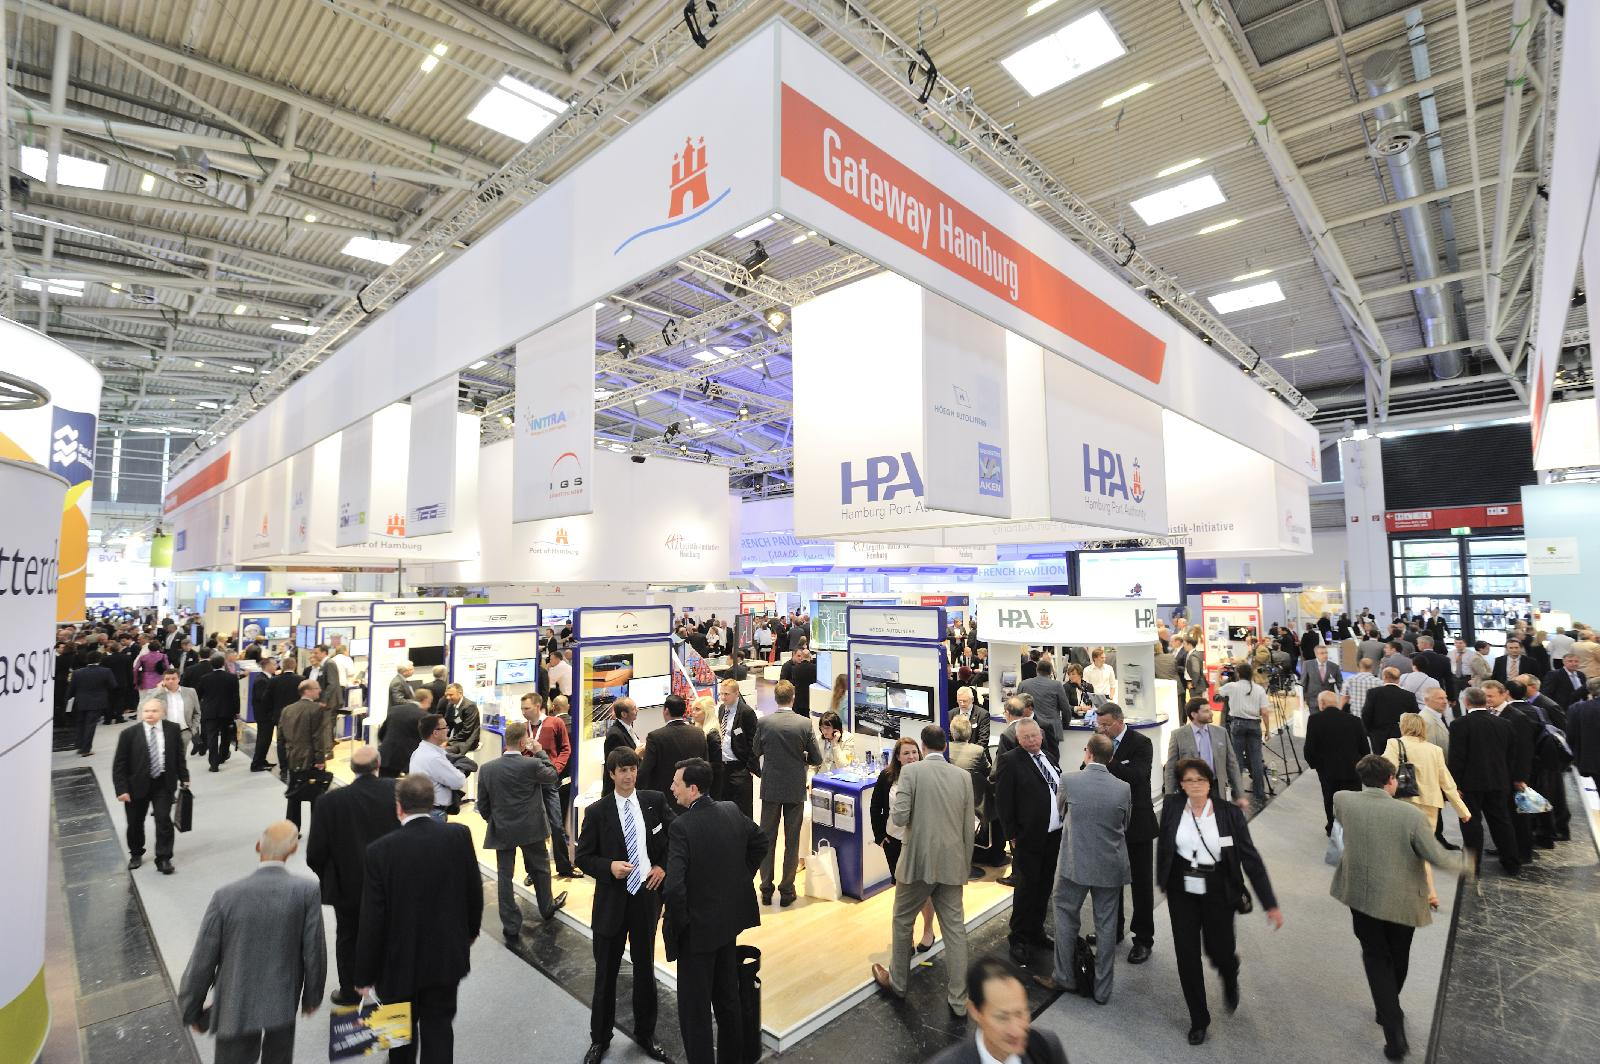 Gateway Hamburg show to be held in at Munich trade fair May 5 - 8